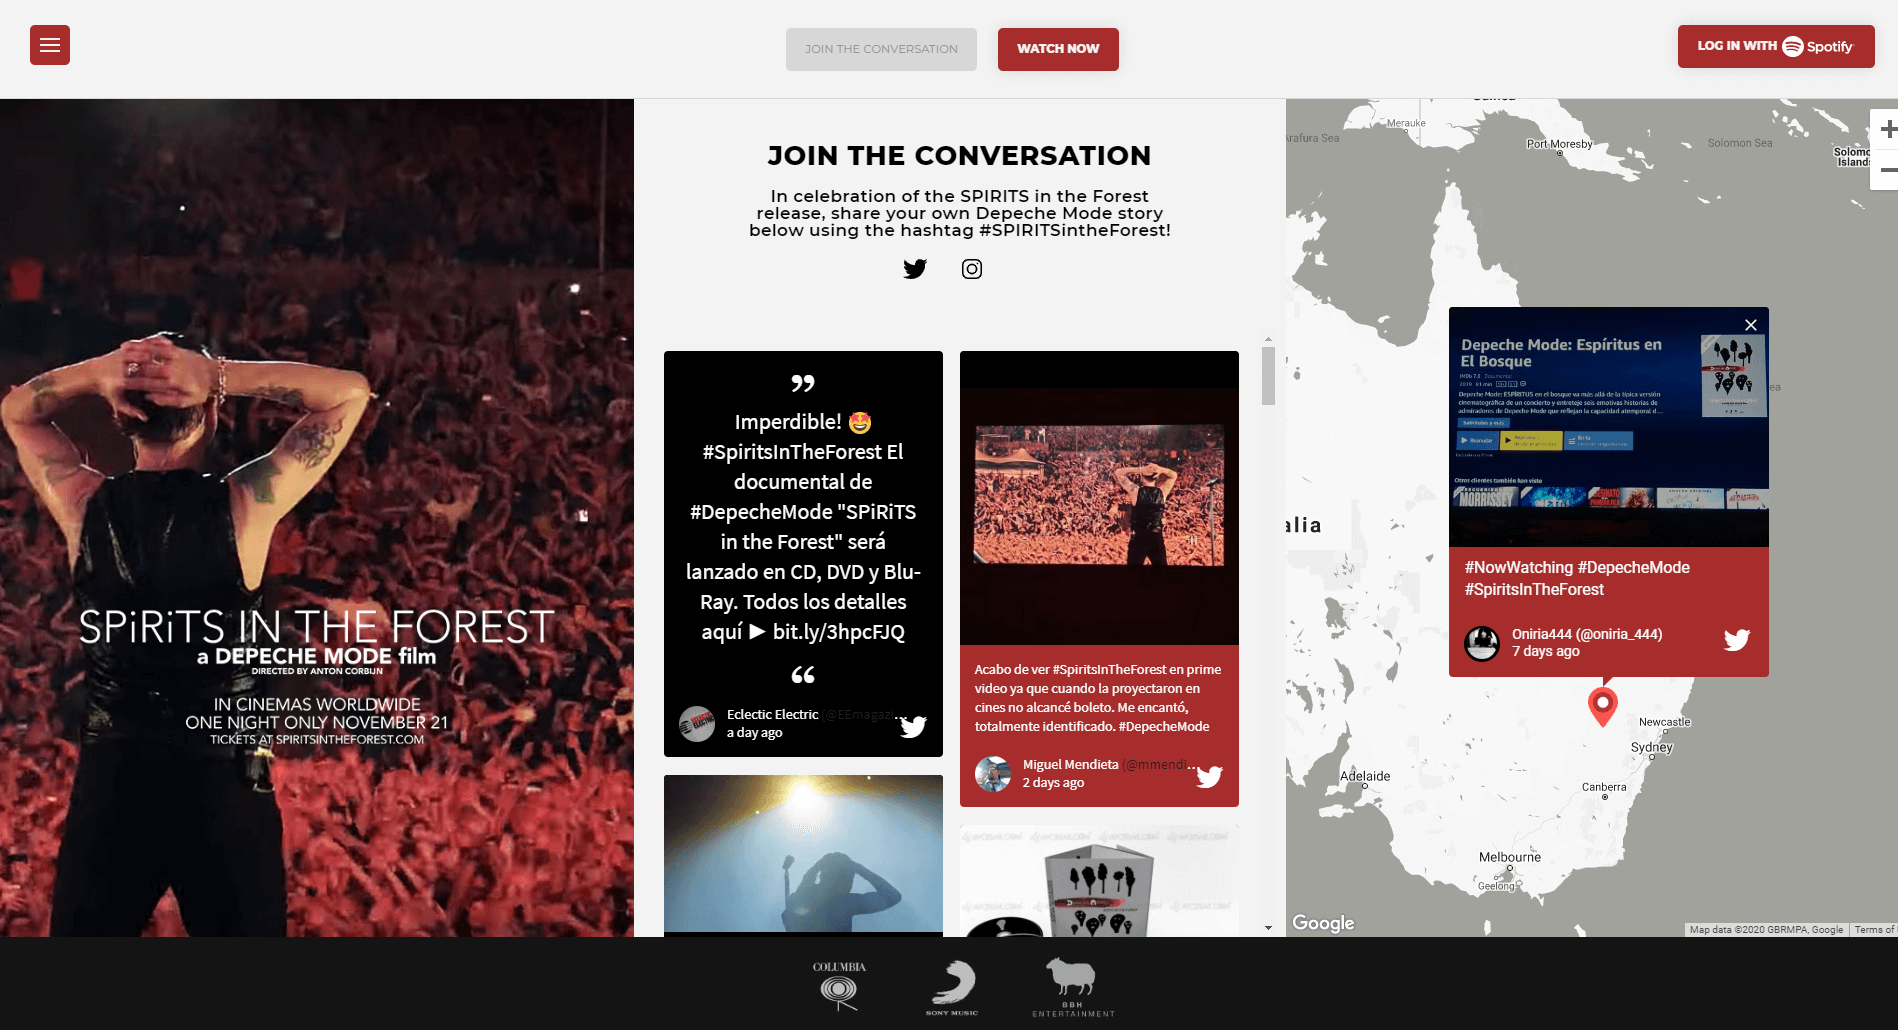 The Spirits in the Forest website, split in three columns. On the left, a photo showing one of the band members from behind as he?s standing facing the crowd at a concert. A text overlay advertises the movie launch. In the middle, the social media wall is embedded under the heading ?JOIN THE CONVERSATION?, encouraging fans to post on Twitter and Instagram using the #SPIRITSintheForest hashtag. In the right column, the social wall is embedded again but with the map theme, showing content being posted from Australia. (Event example, with audience engagement)